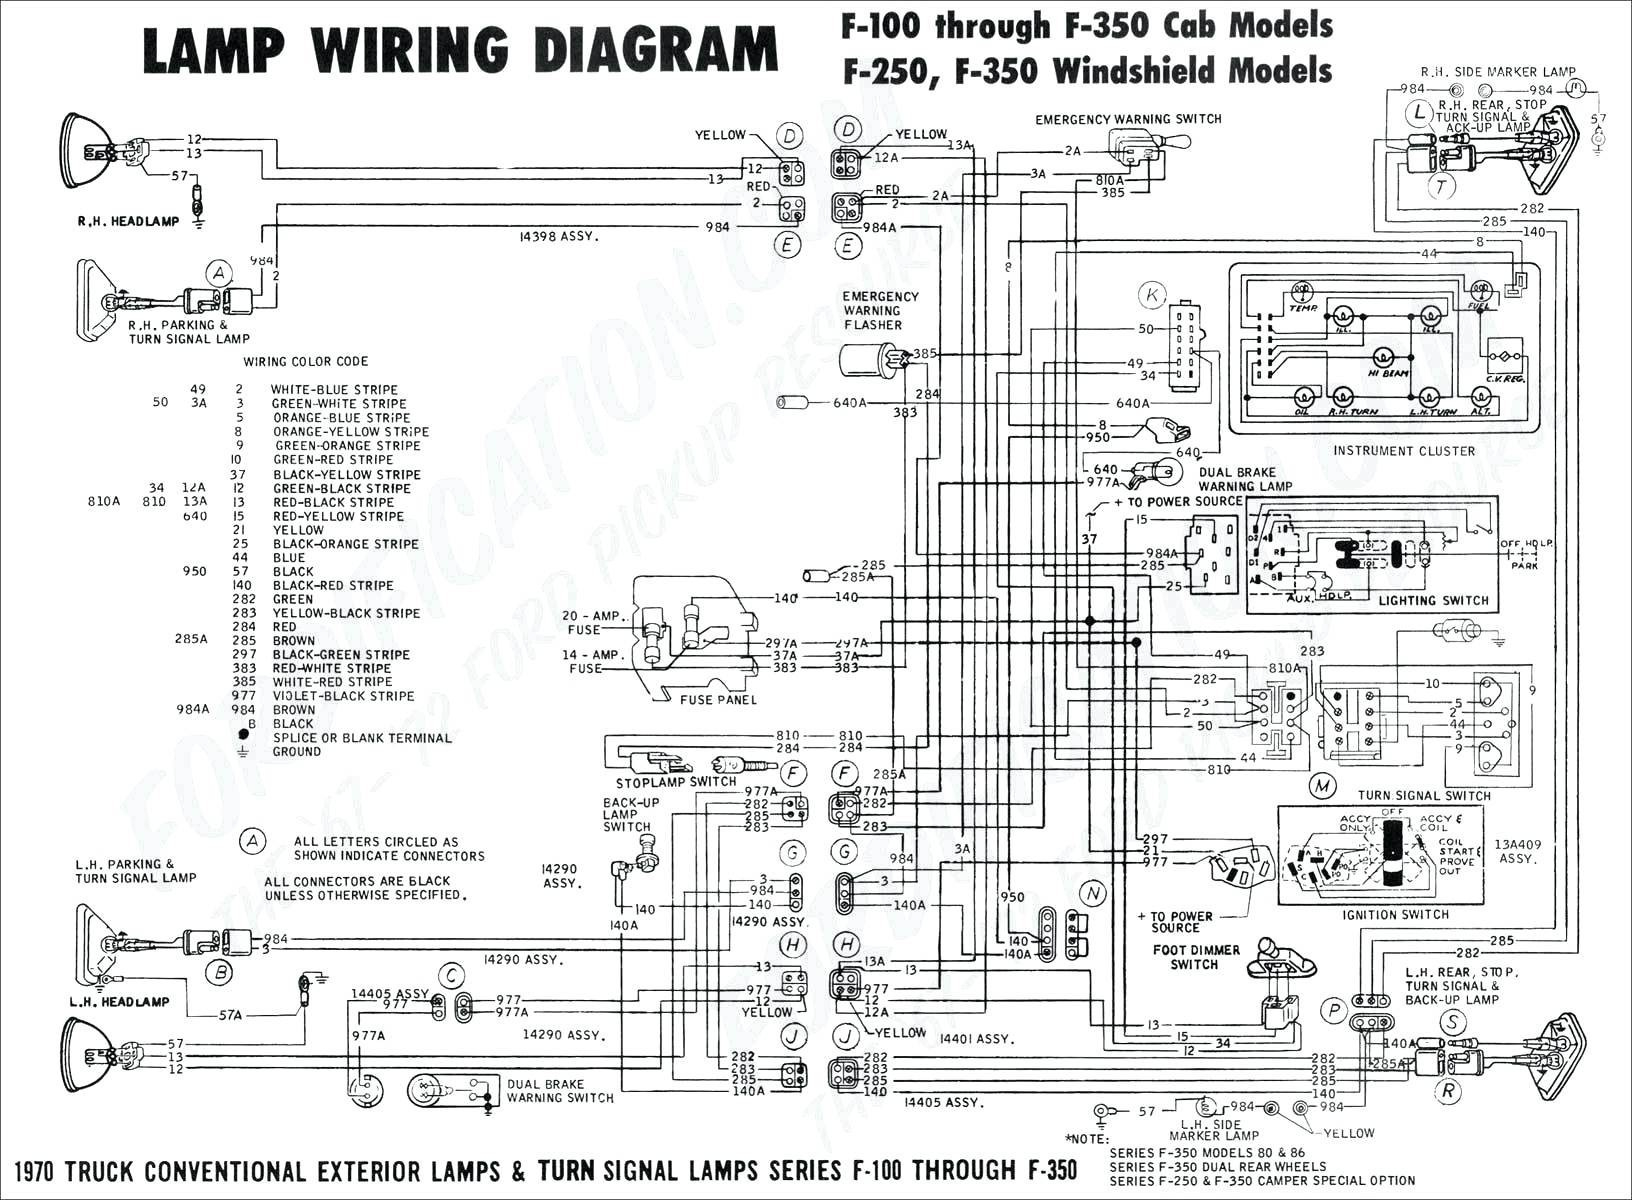 Datsun 620 Wiring Diagram Tail Light - Wiring Diagram Data on